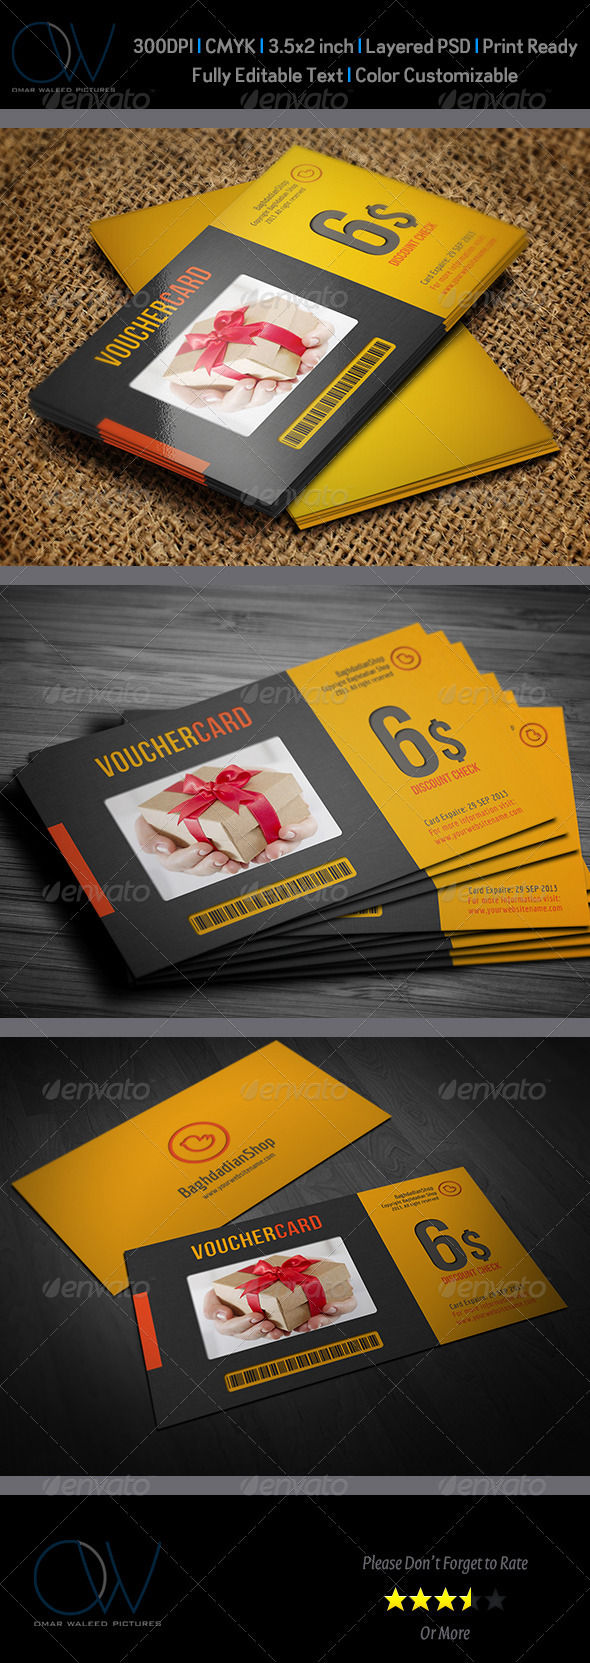 Gift / Voucher Card Vol 2 - Cards & Invites Print Templates